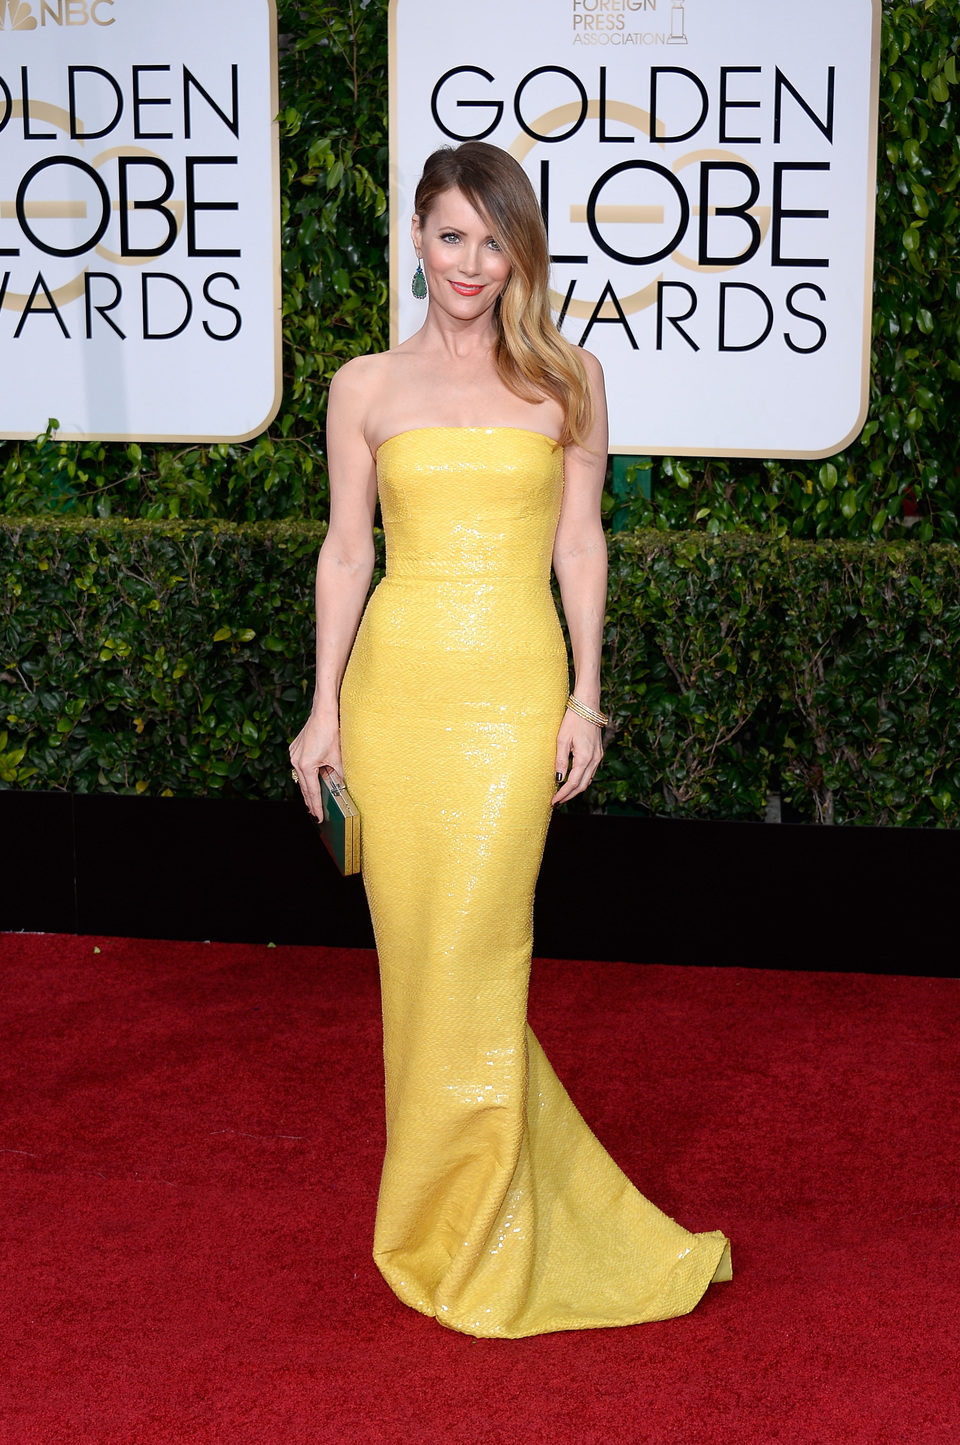 Leslie Mann at the Golden Globes 2015 red carpet